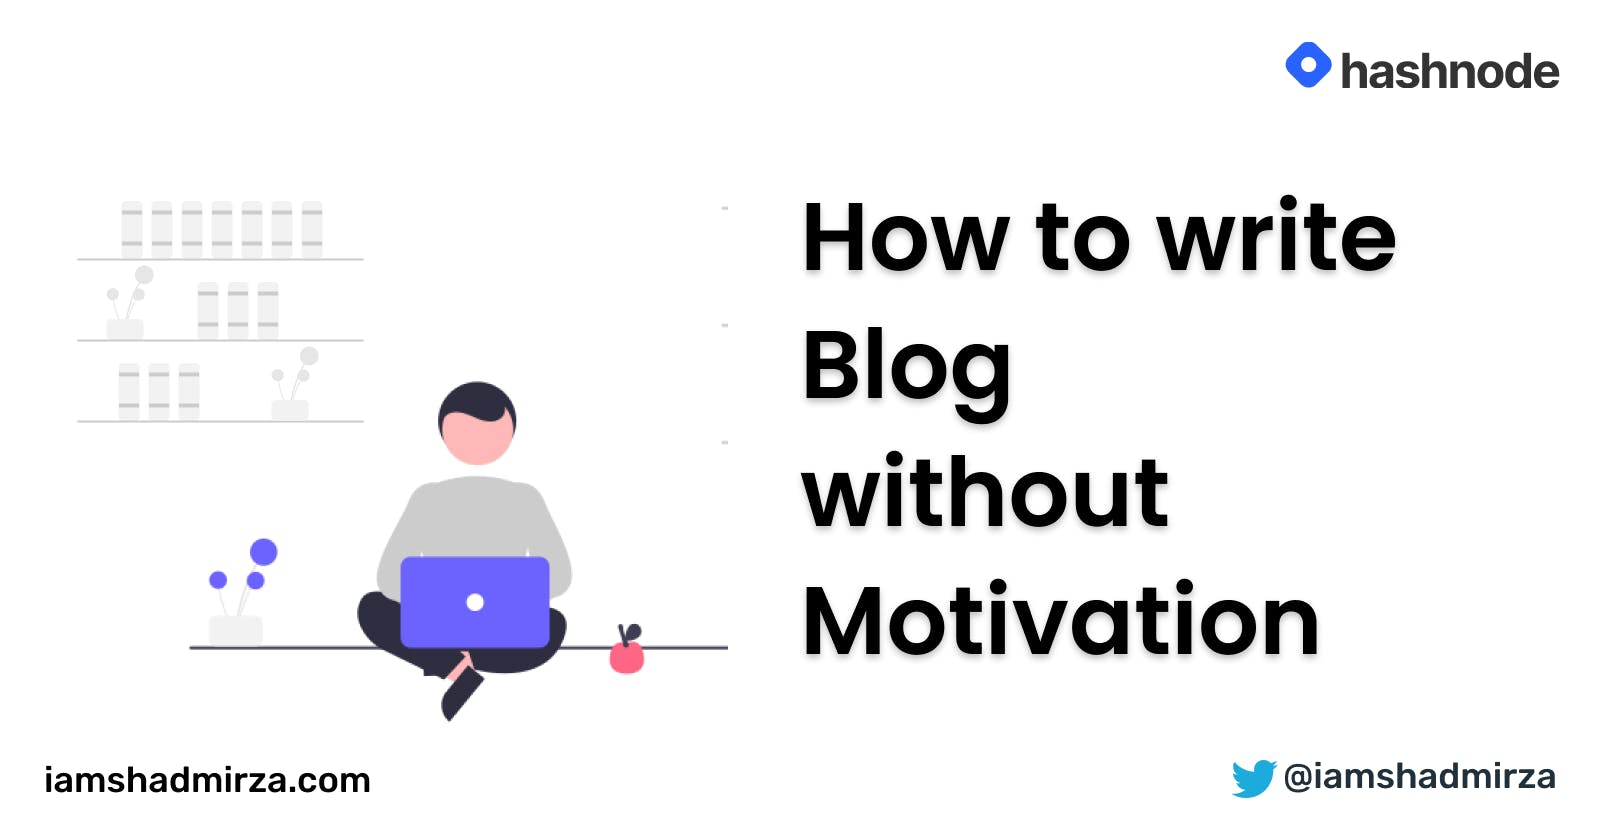 How to write Blog without Motivation